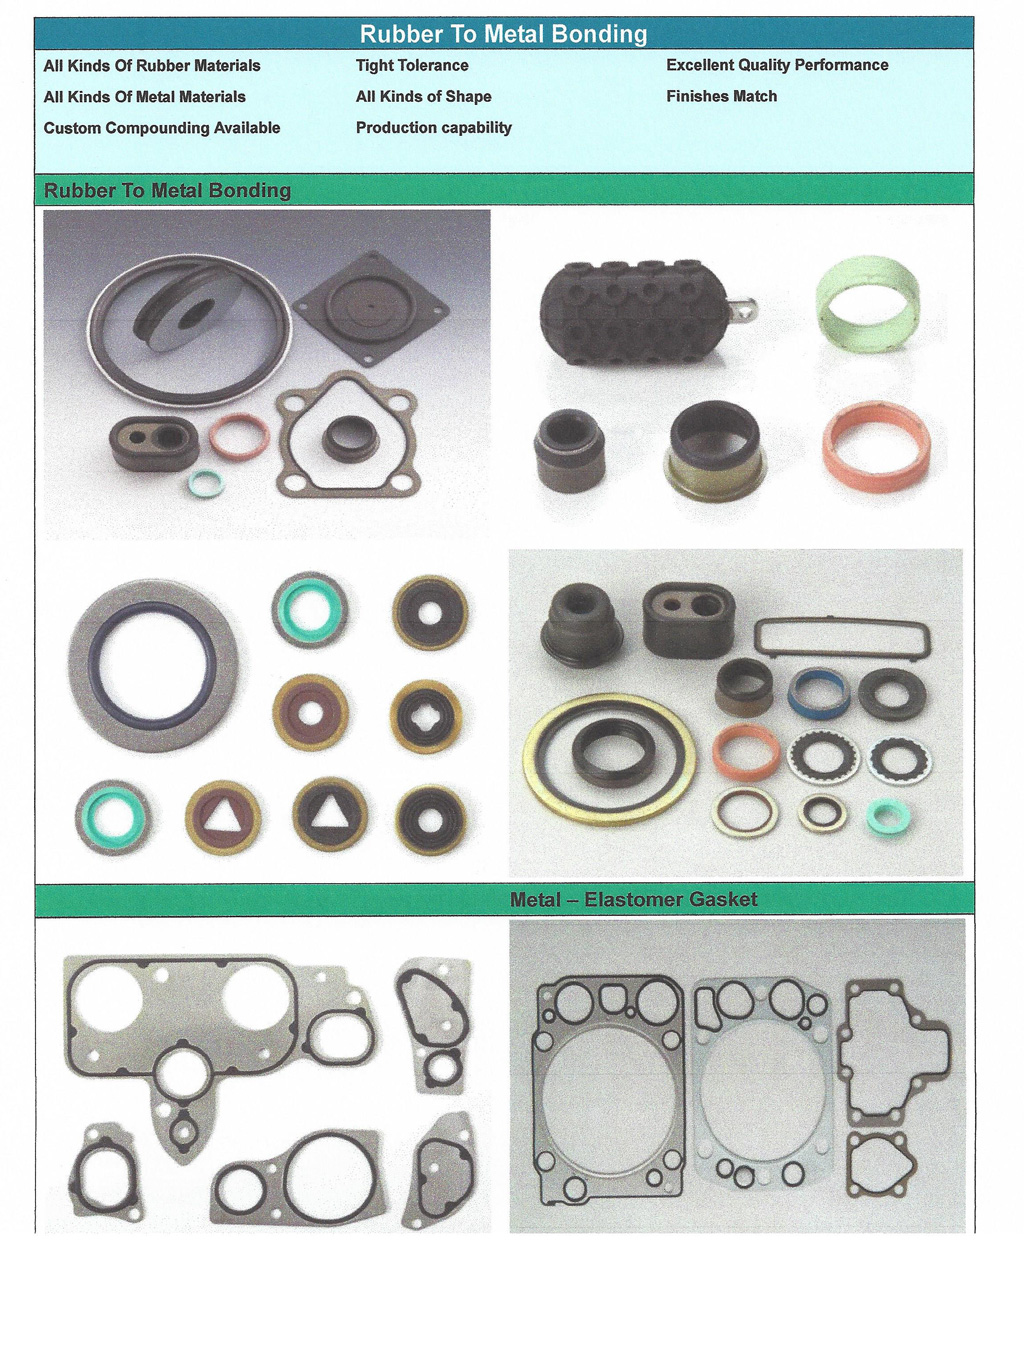 Custom Molded Parts and O-Rings   Midwest Gasket Corp